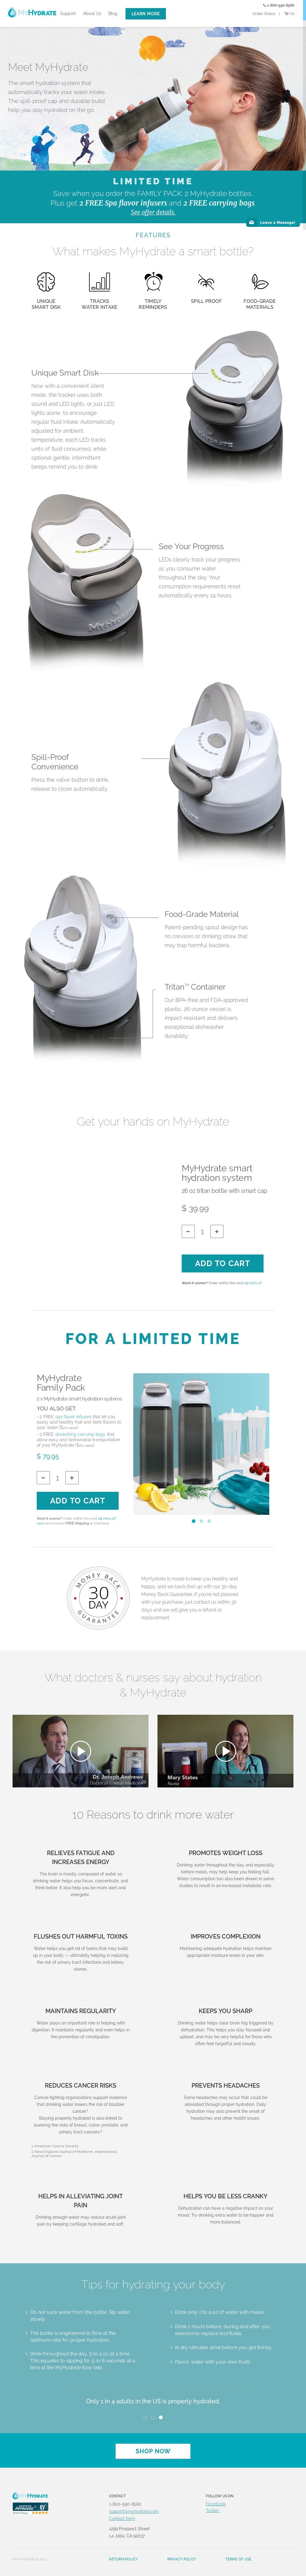 Myhydrate coupon code